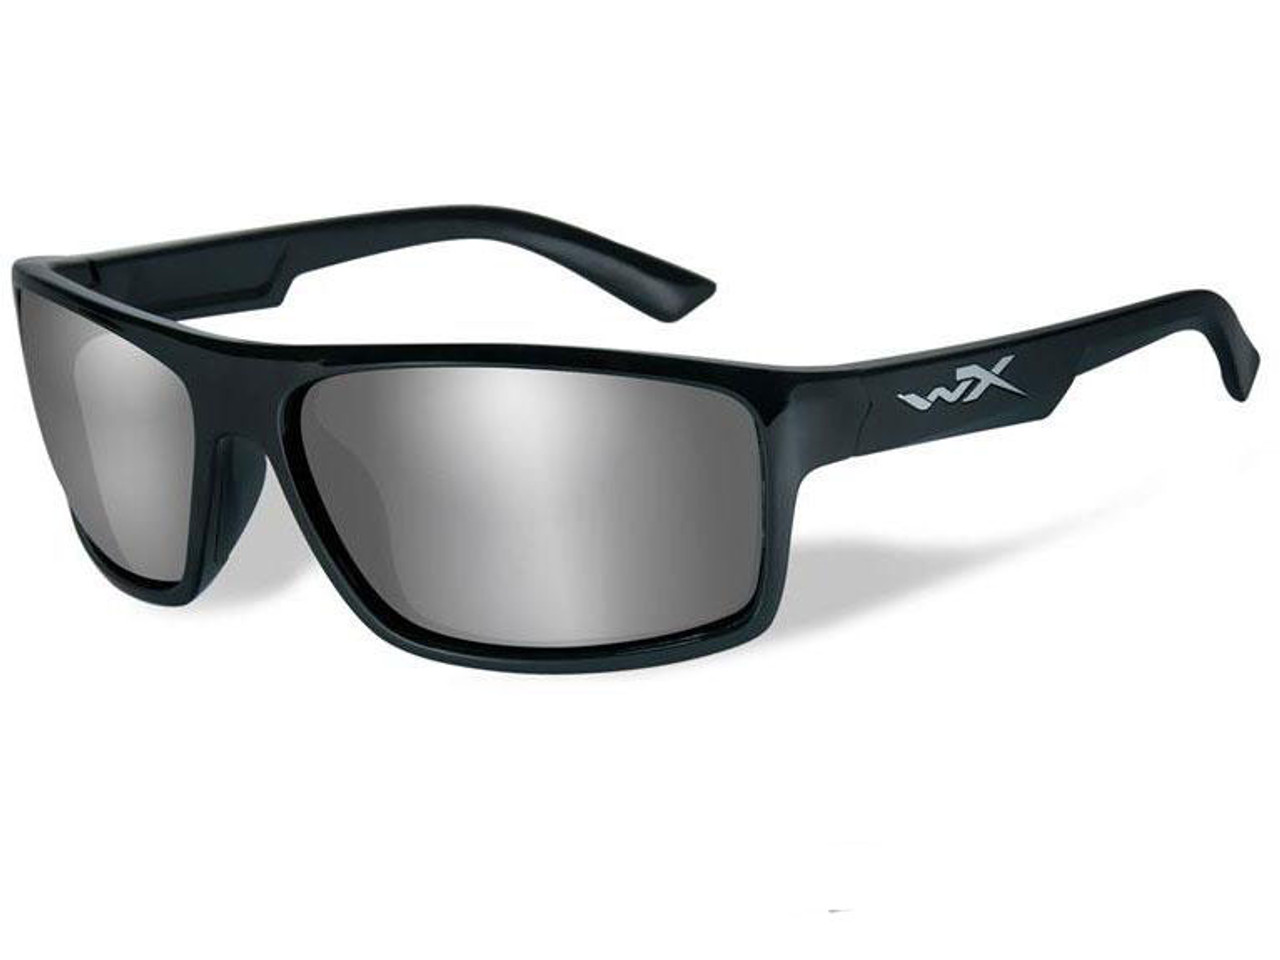 02aec78870339 Wiley X Peak Polarized Sunglasses (Color  Silver Flash lens with Gloss Black  Frame)